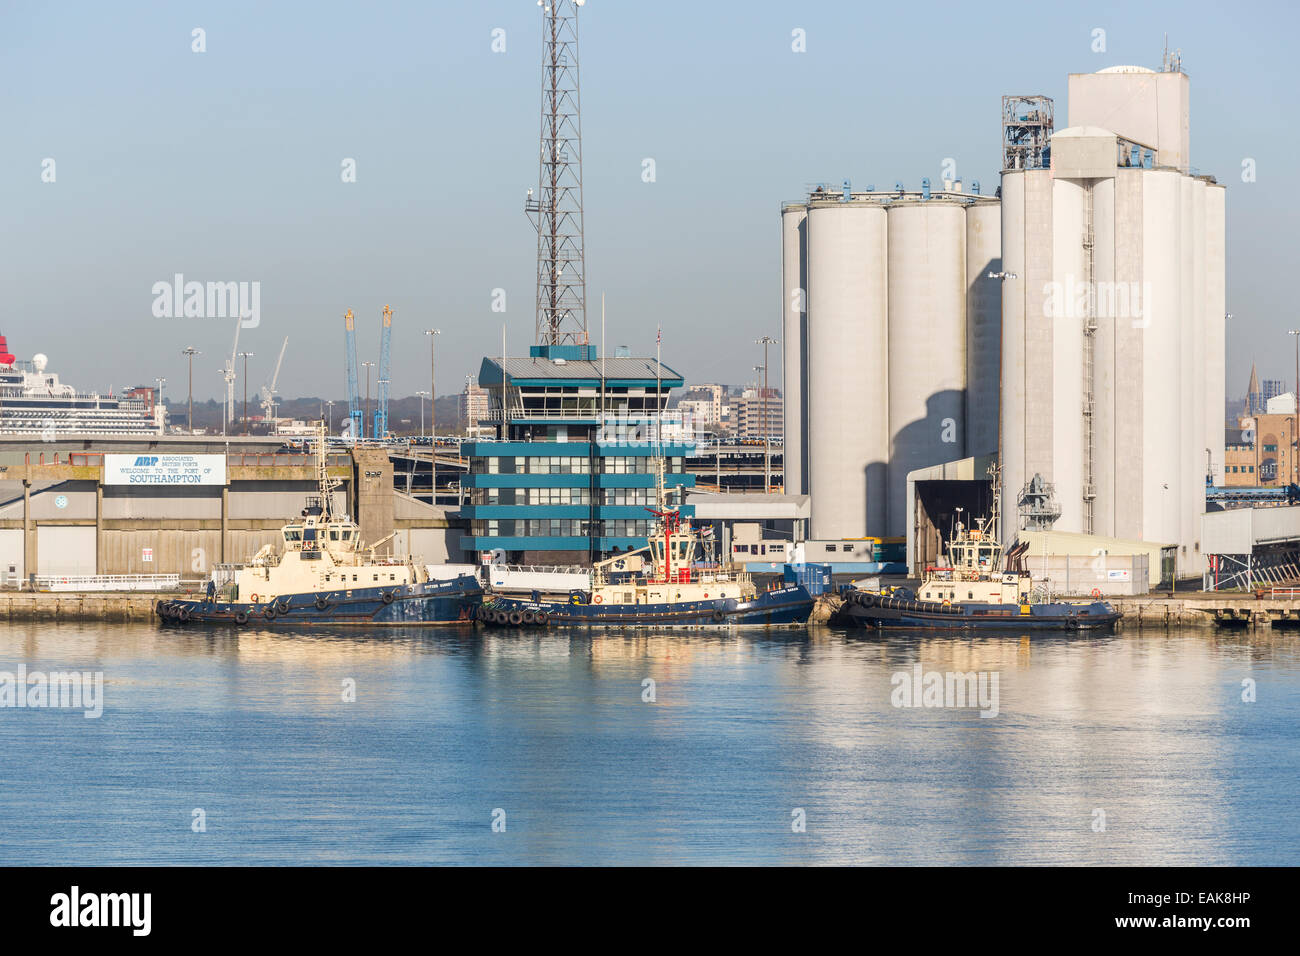 Tugs moored at the quayside, Southampton Docks, Port of Southampton, the Solent, Hampshire, UK - Stock Image